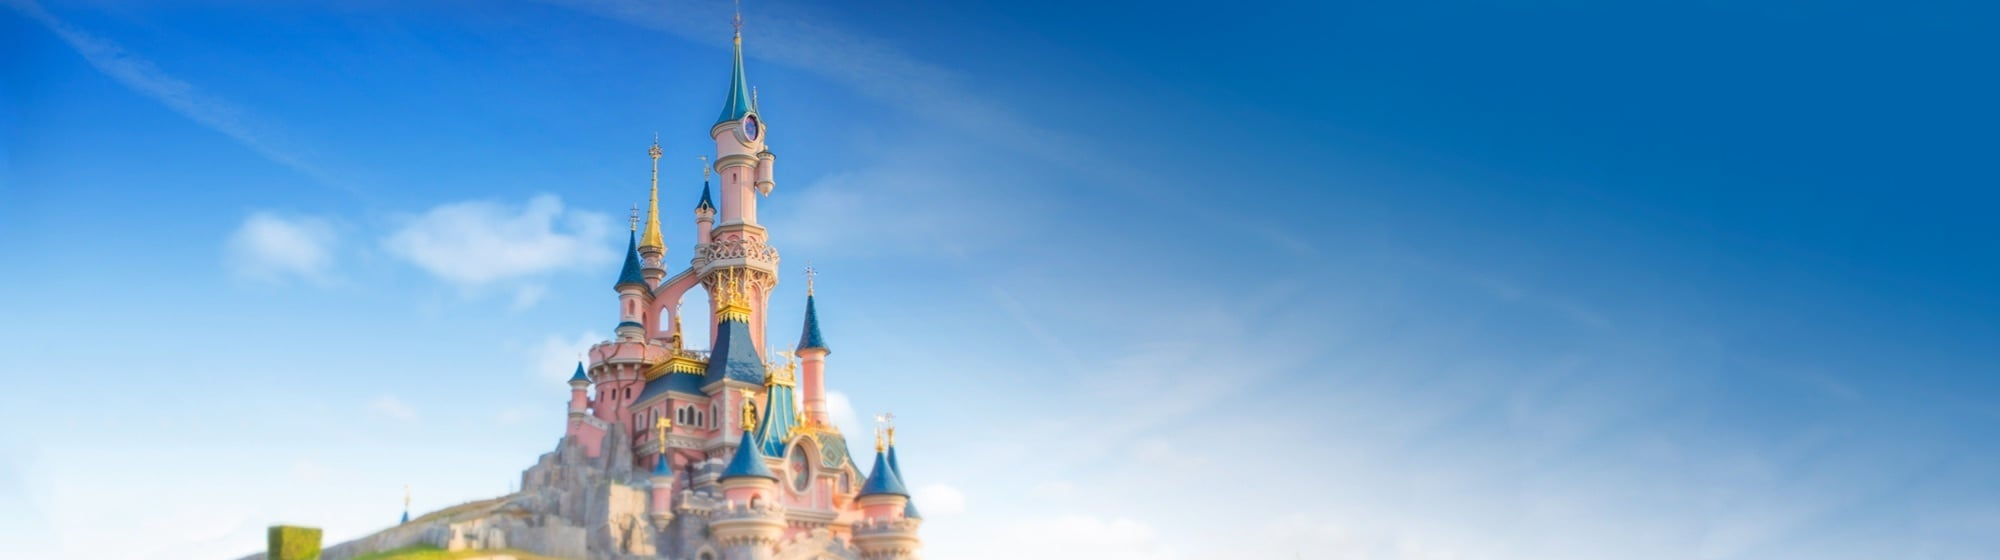 BOOK BILLETTER TIL DISNEYLAND® PARIS